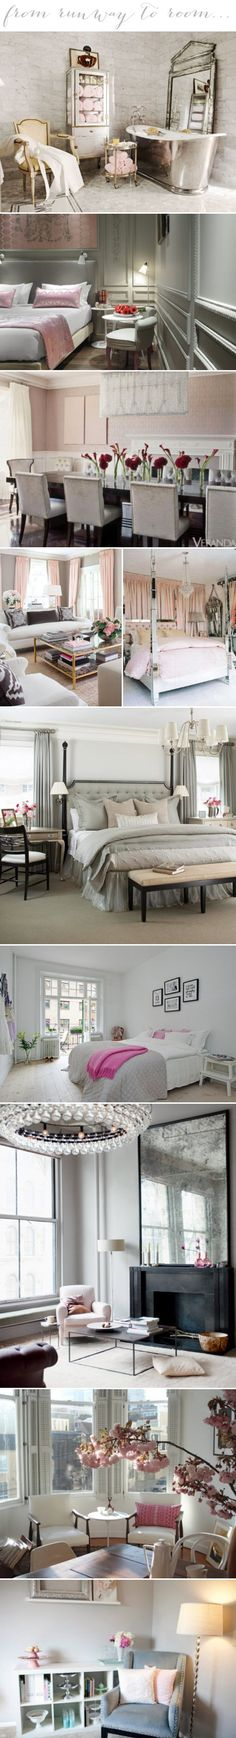 From Runway to Room. Grey, silvers & pinks meet up in these pretty rooms. #laylagrayce #popsofpink #design